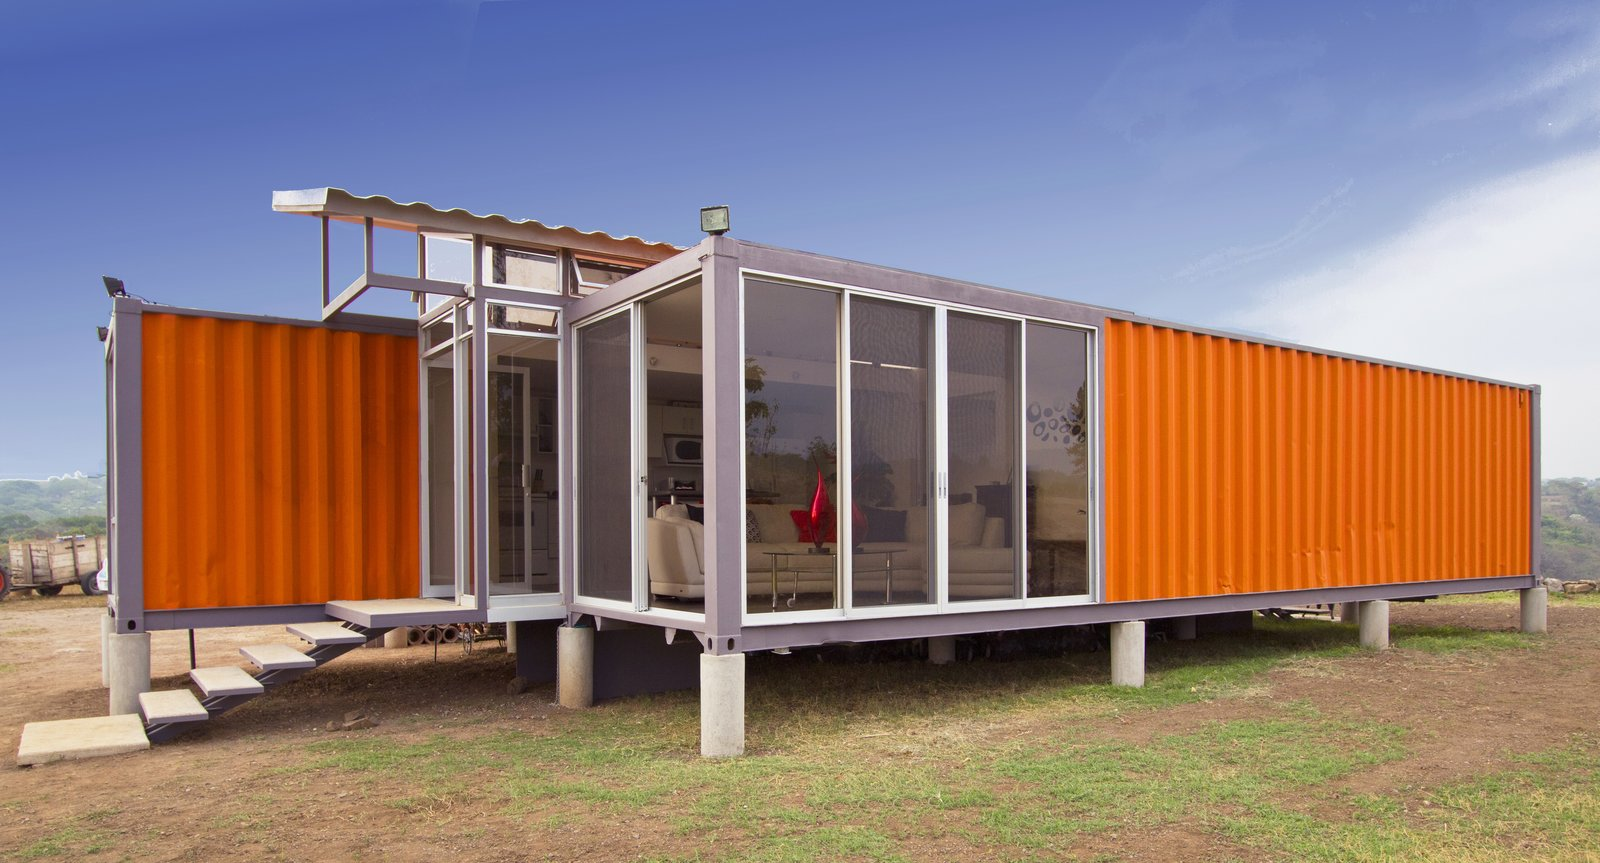 Set slightly apart, each container is installed on pier foundations.  A Budget-Friendly Shipping Container Home in Costa Rica  by Tiffany Jow from House of the Week: Comfortable Home Made of Two Shipping Containers